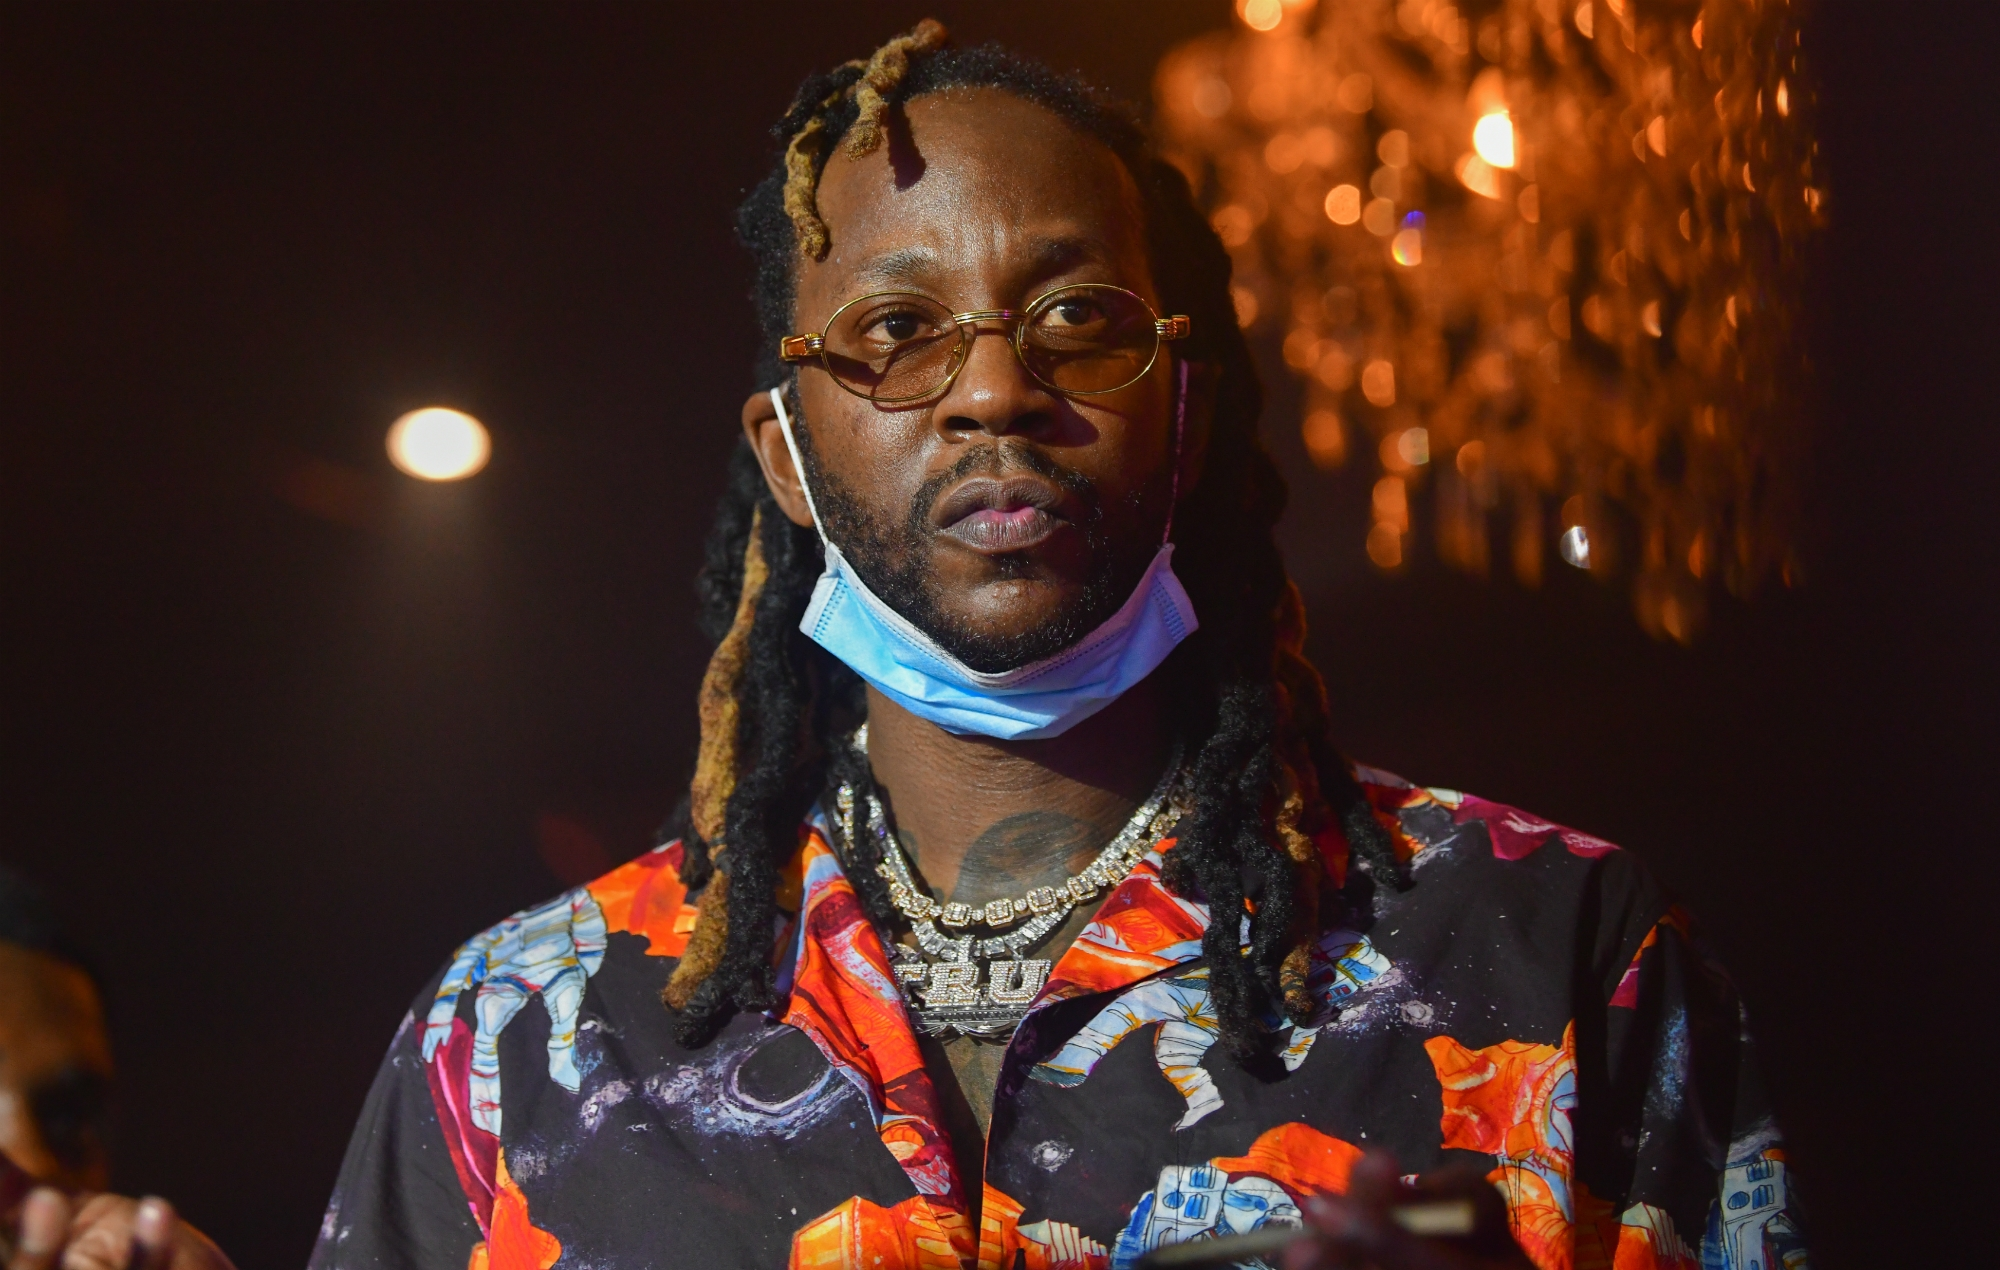 2 Chainz Announces New Album, Talks New Projects With Kanye And Lil Wayne